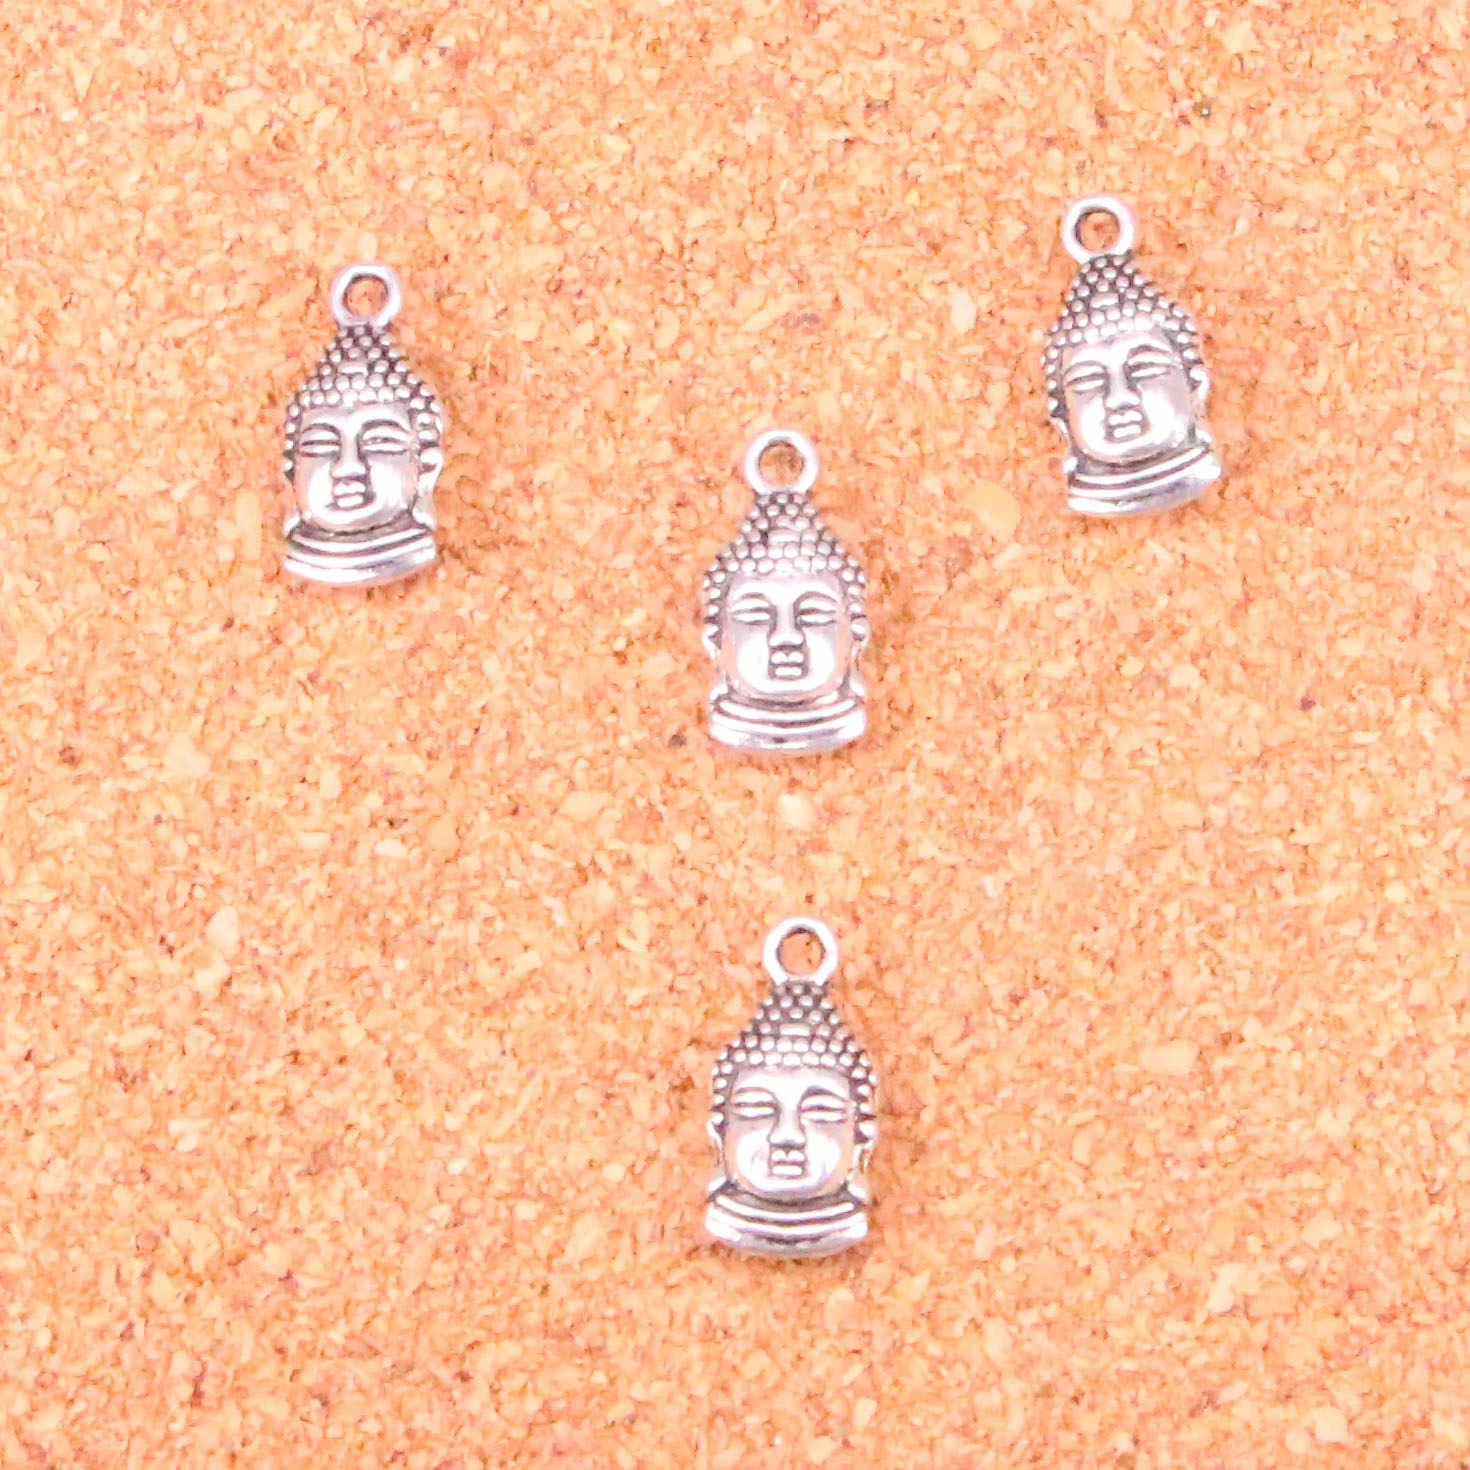 76 pcs Charms buddha head,Antique Making pendant fit,Vintage Tibetan Silver,jewelry DIY bracelet necklace 16*8mm